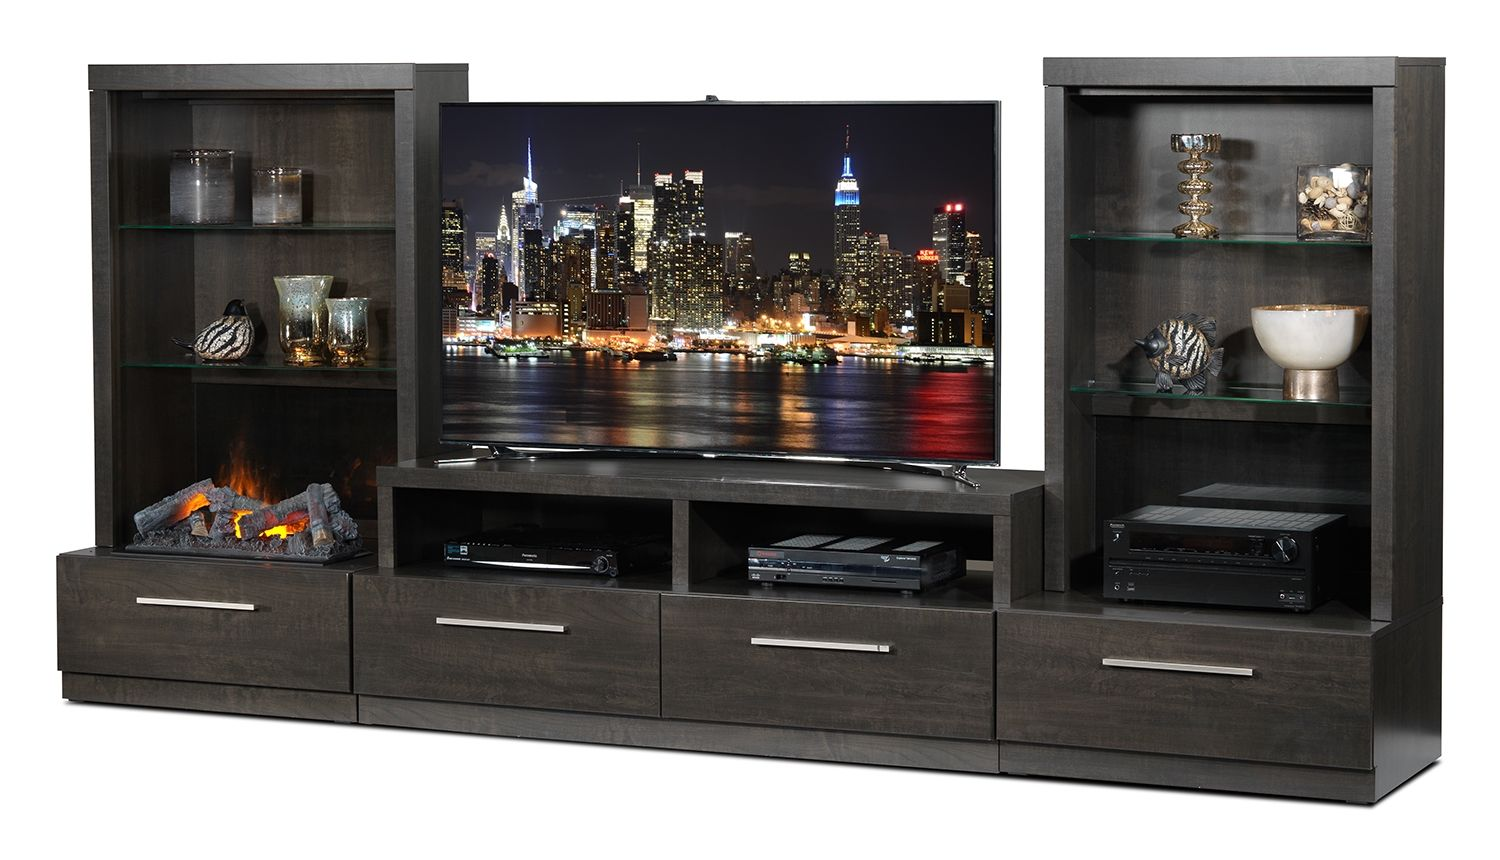 Leons Furniture Kitchener Lakeshore Entertainment Wall Units 7 Pc Fireplace Entertainment